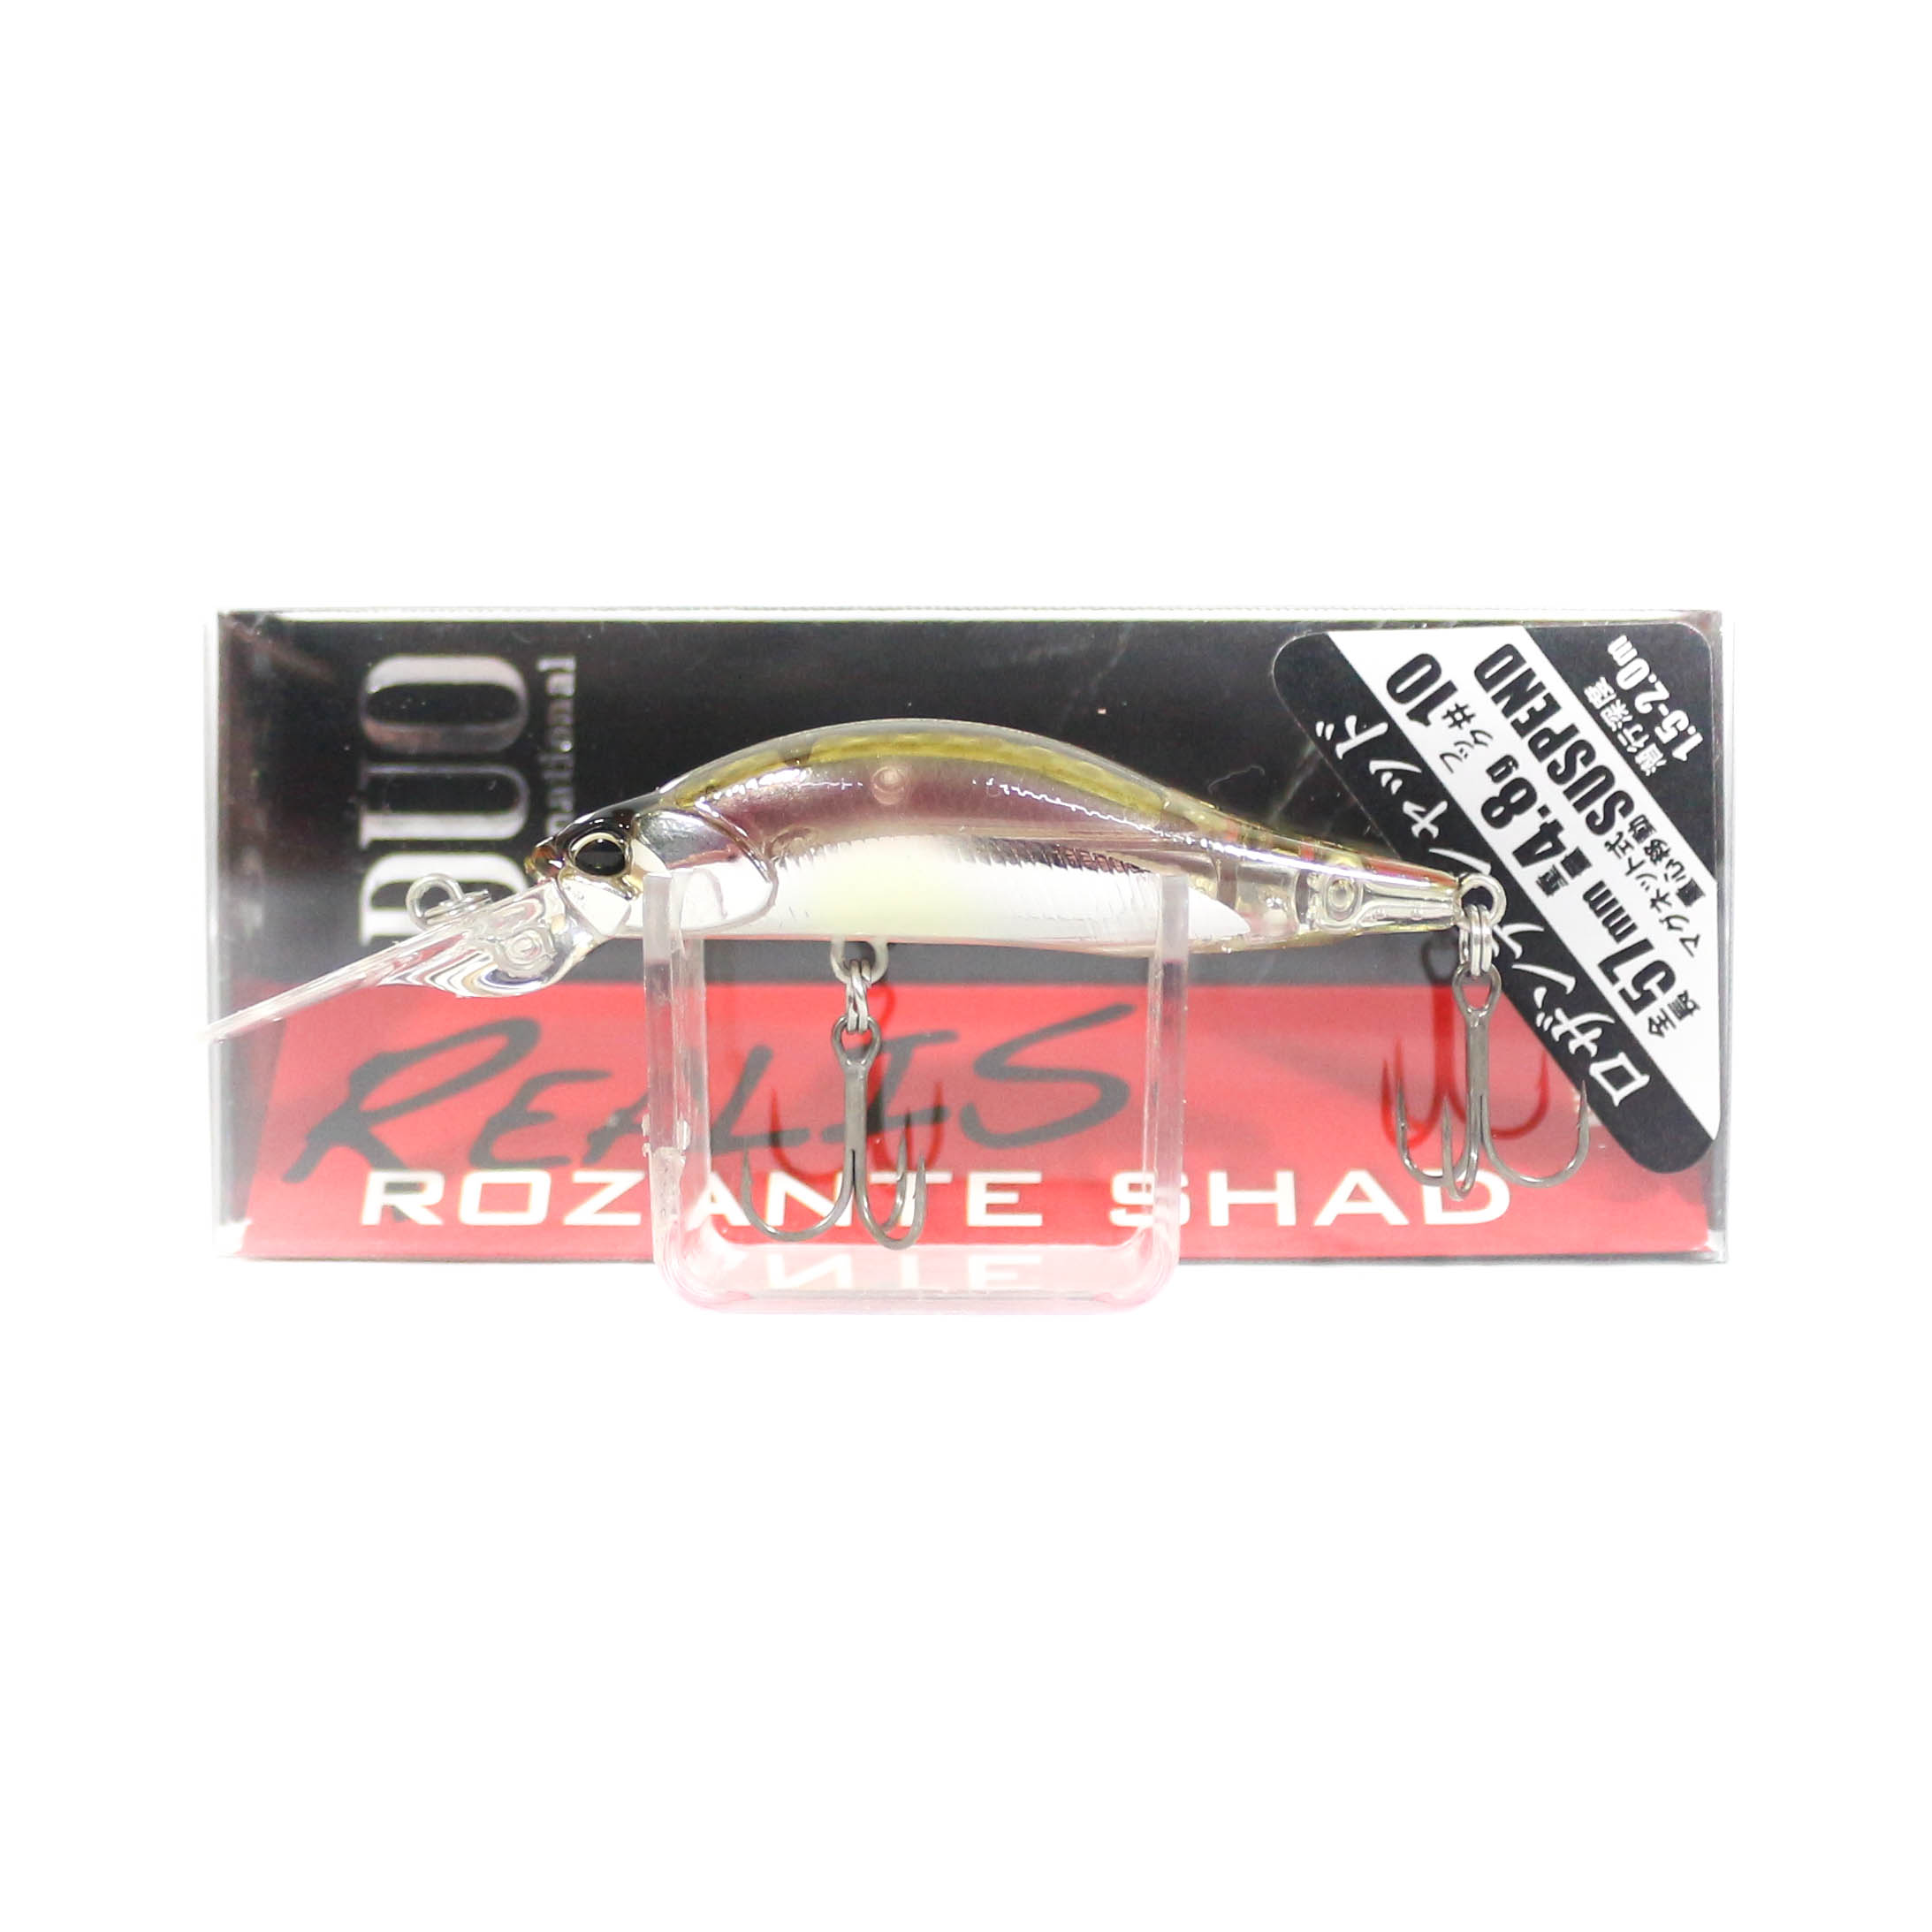 Duo Realis Rozante Shad 57 MR Suspend Lure DSH3061 (9249)